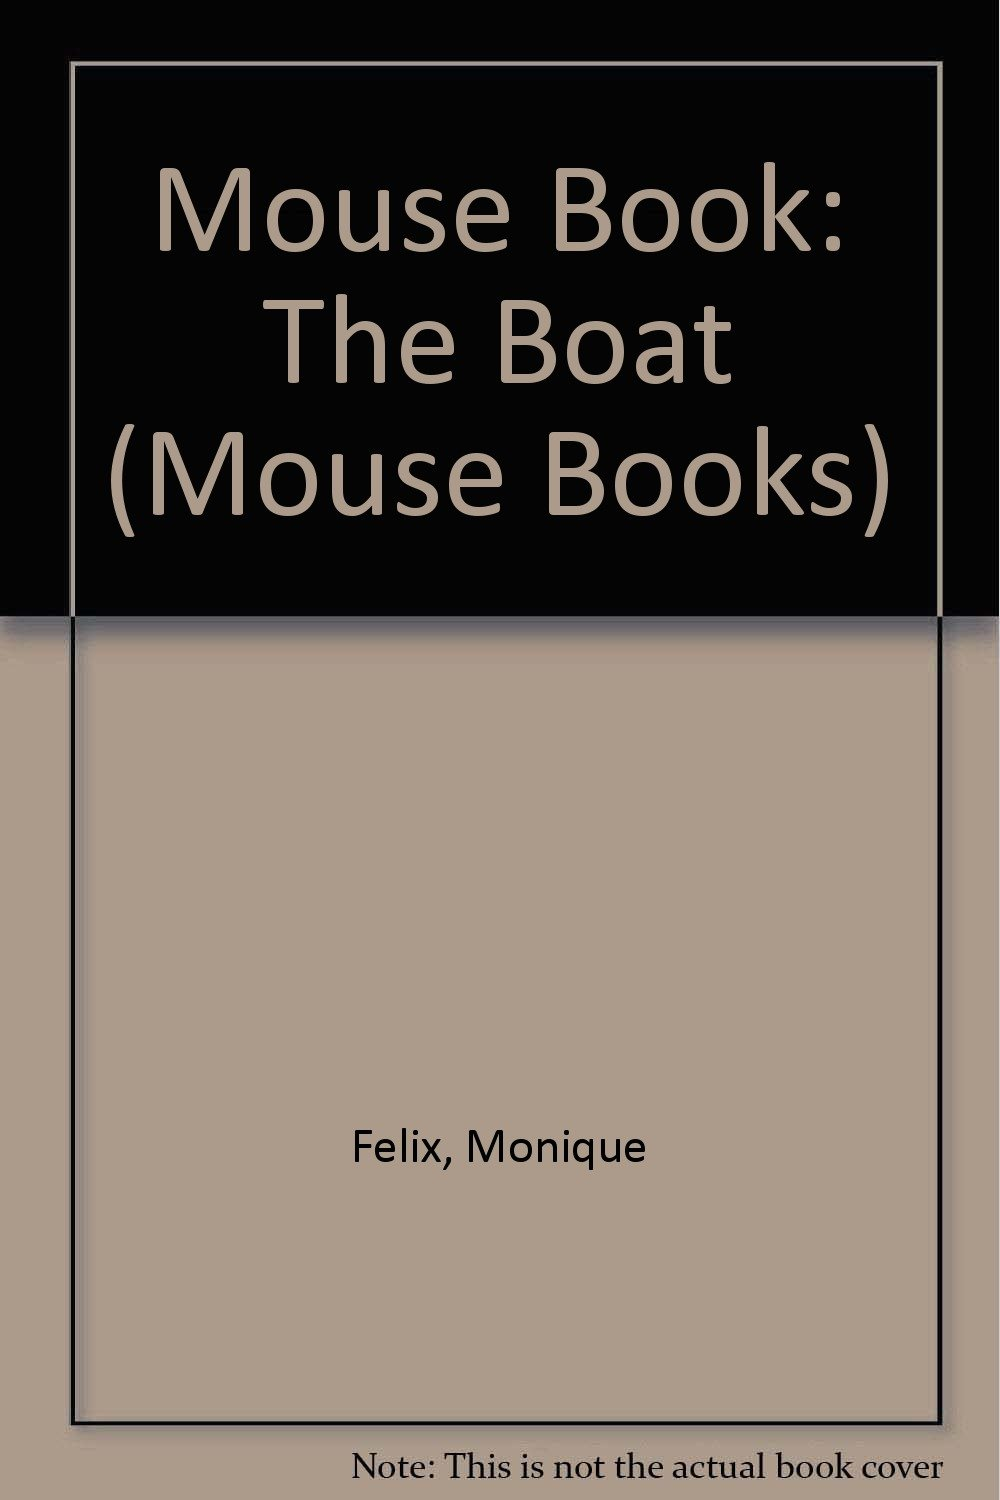 Buy The Boat (Mouse Books) Book Online at Low Prices in India   The Boat (Mouse  Books) Reviews & Ratings - Amazon.in